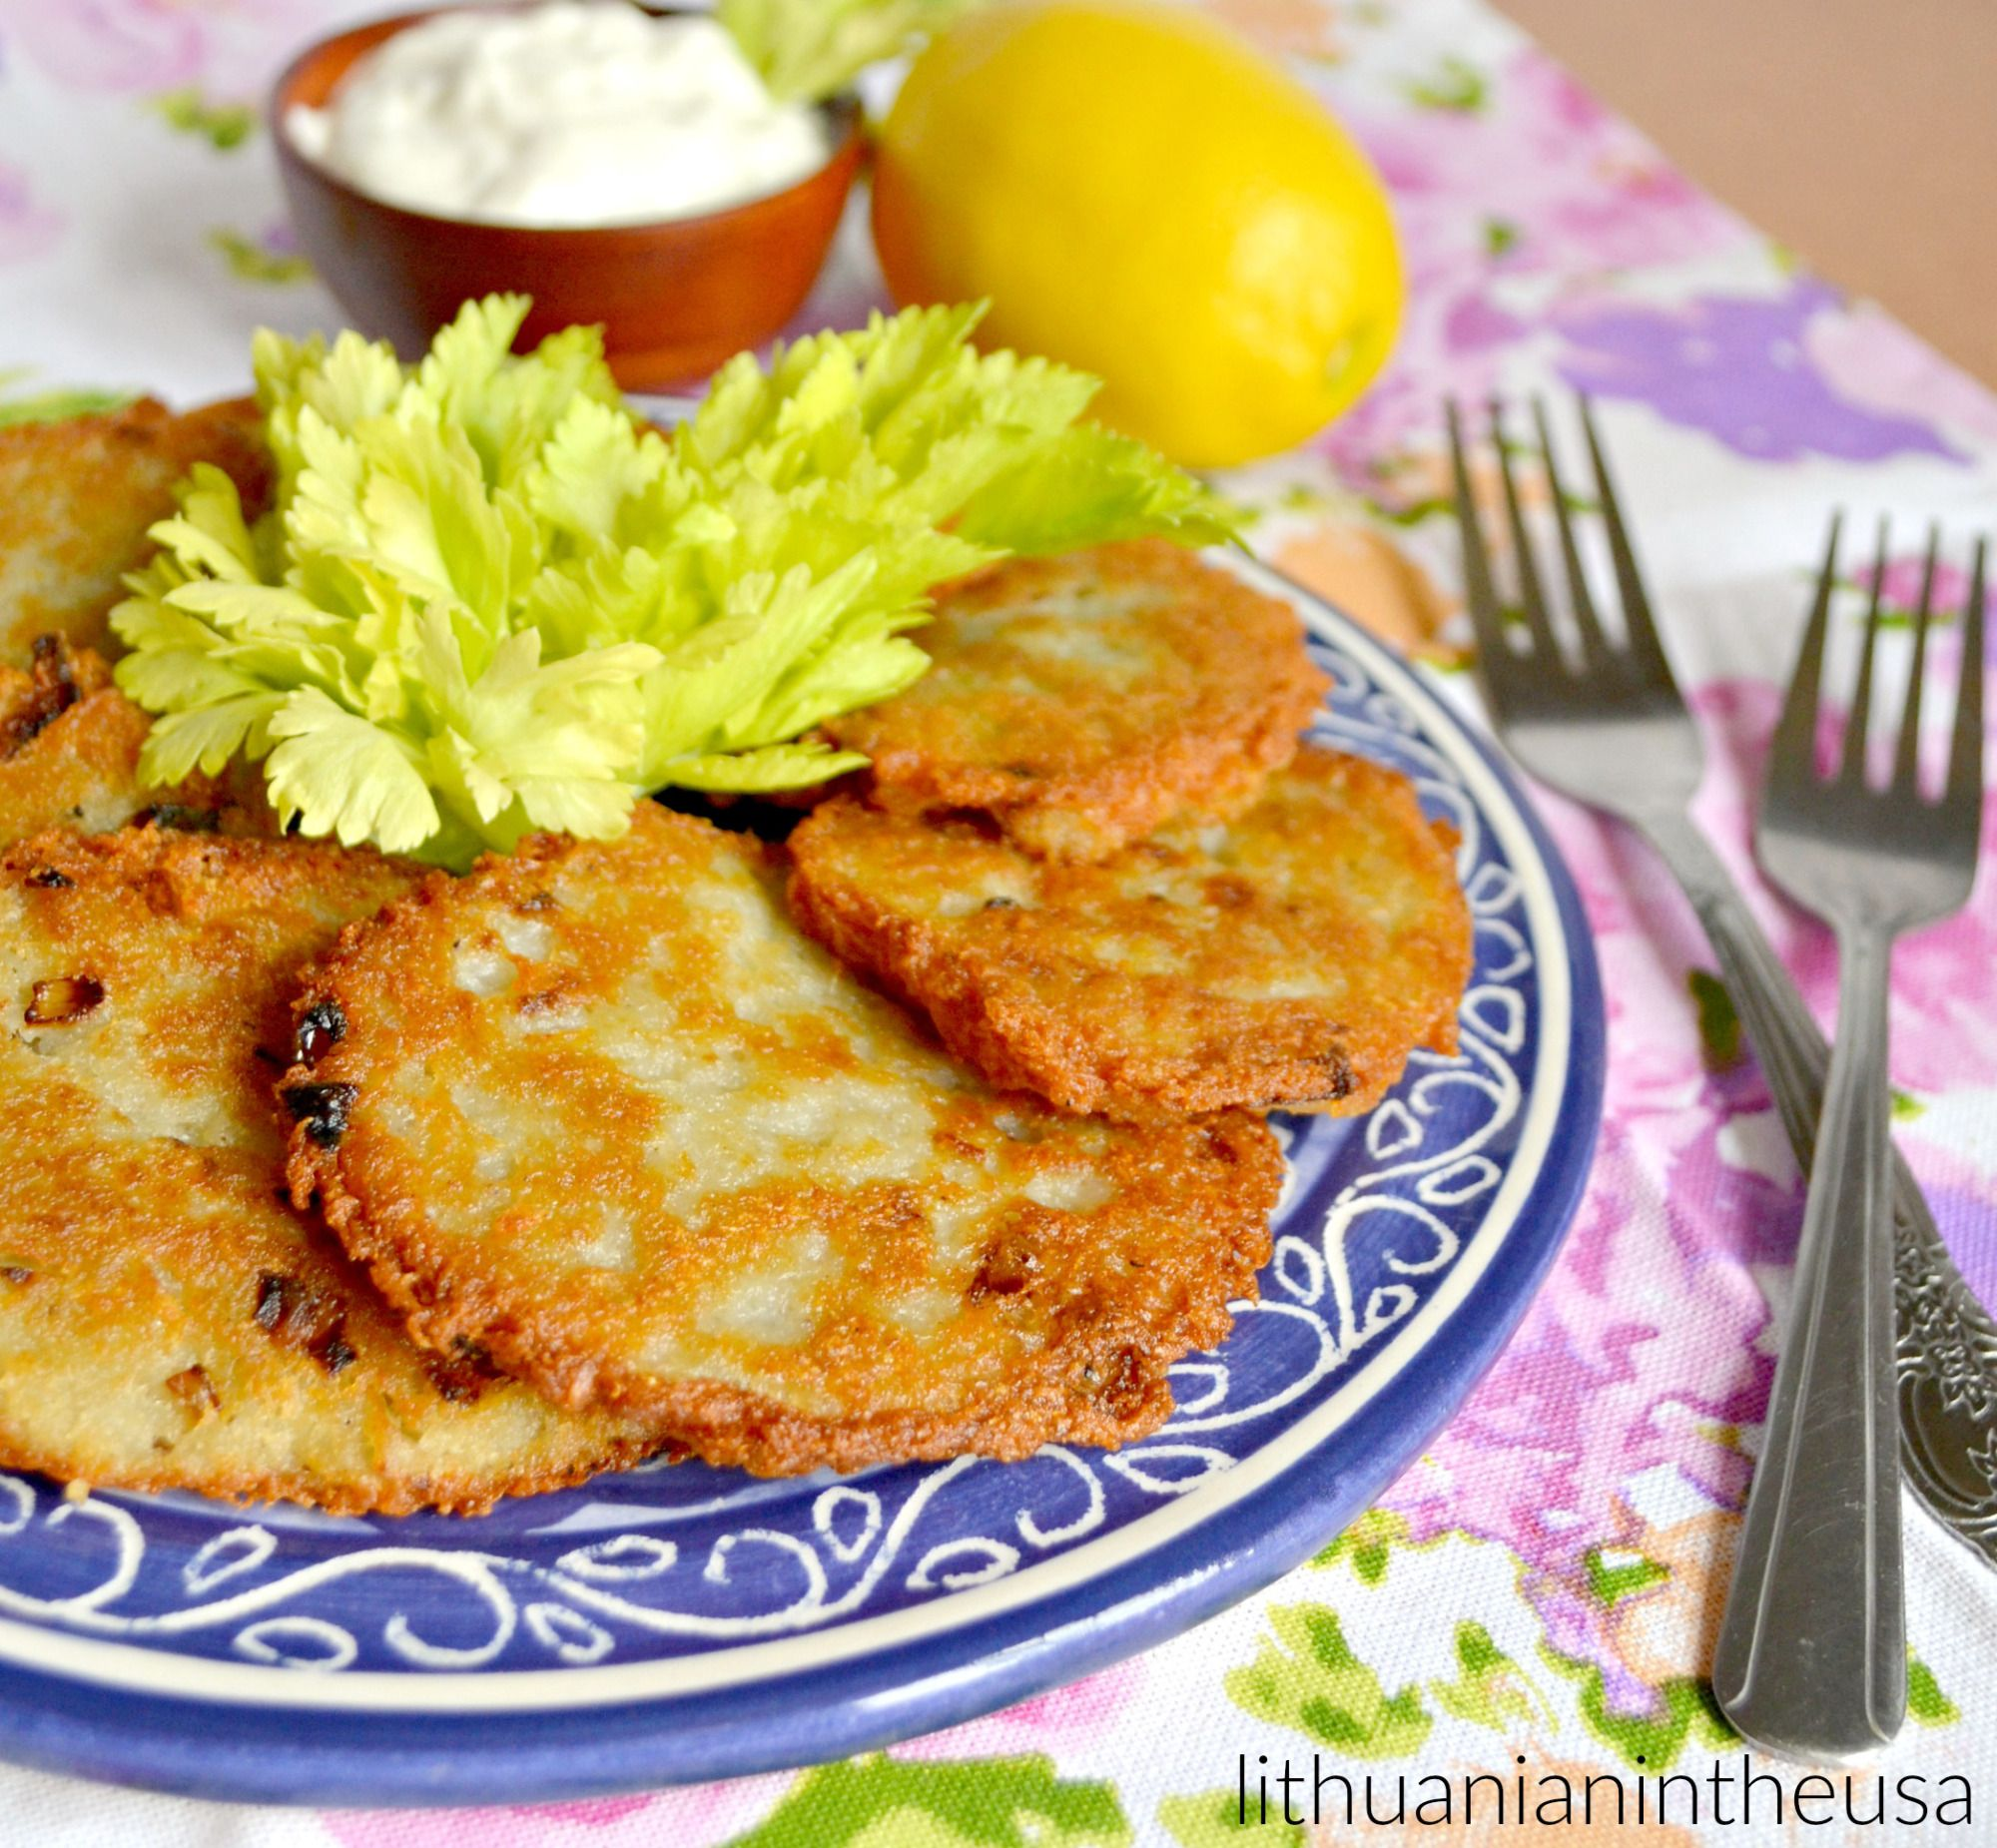 Tradiciniai bulviniai blynai 27 1 recipes international this is one of the easiest recipes to make the potato pancakes most of lithuanians make potato pancakes according to this recipe forumfinder Image collections